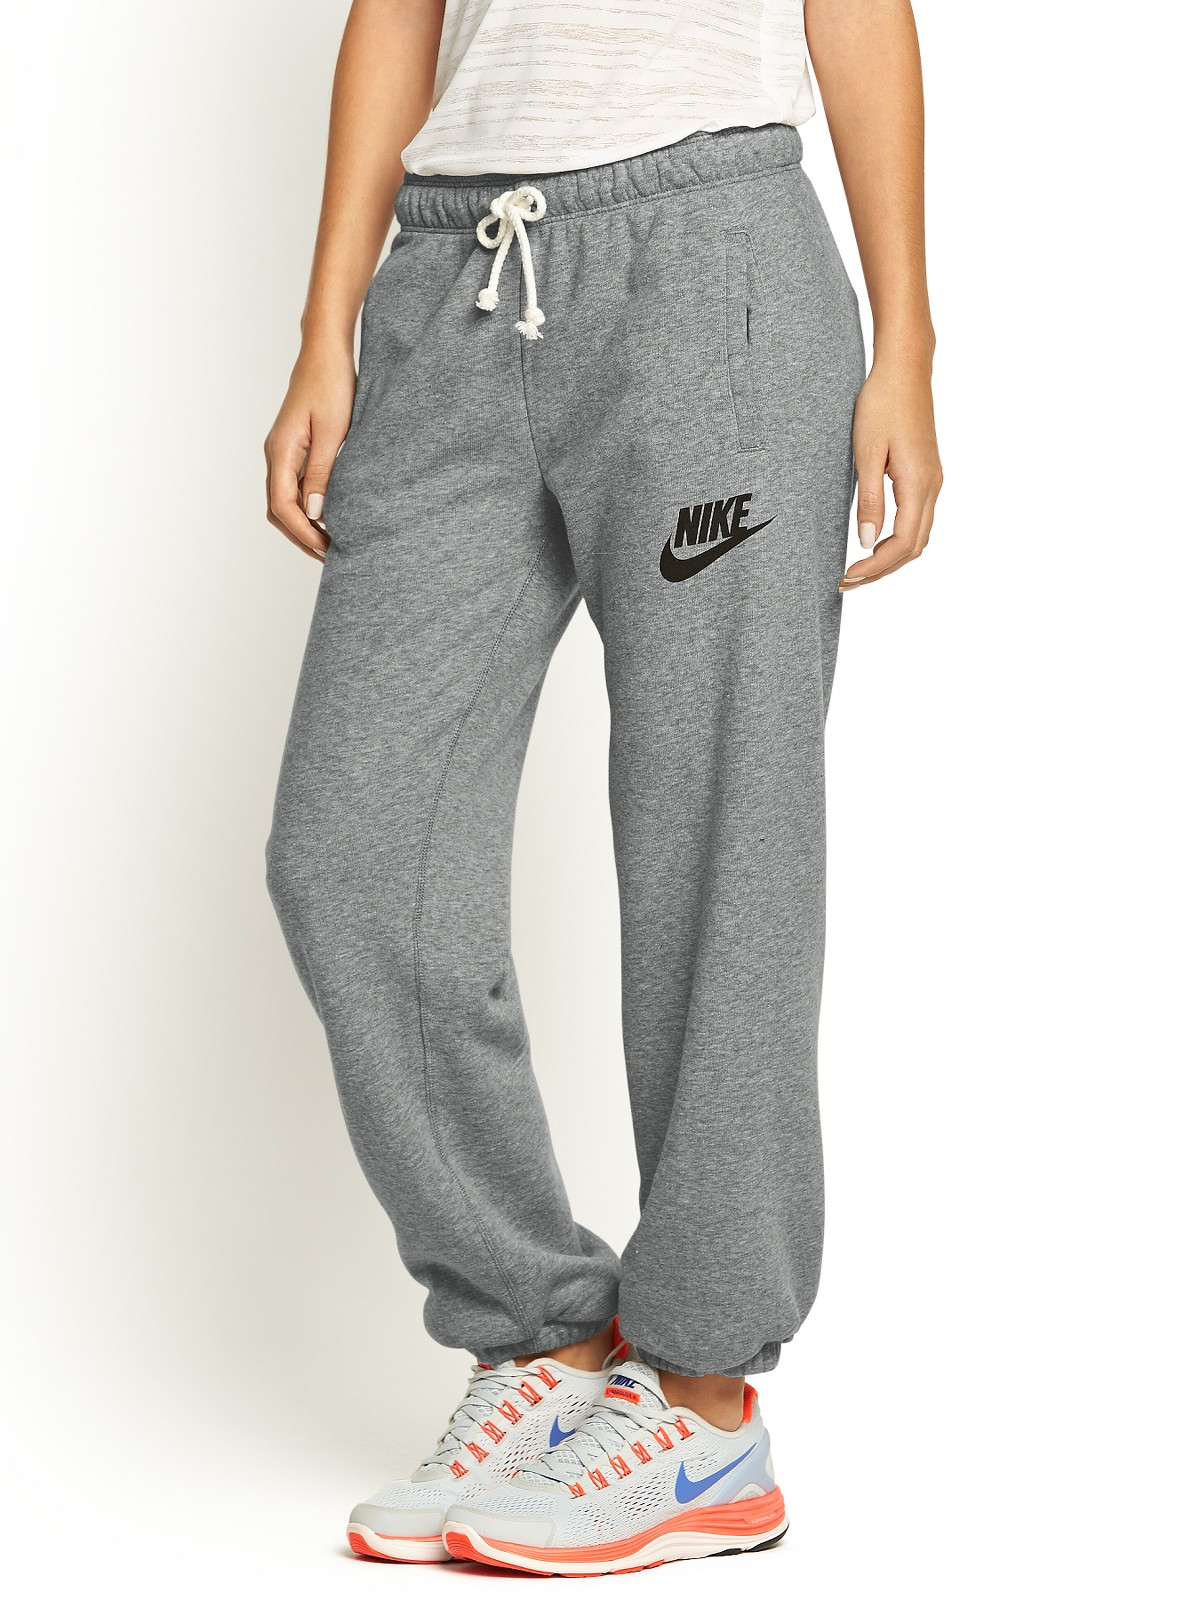 Simple Shop For The Nike Rally Loose Women39s Pants At The Official Nike Store